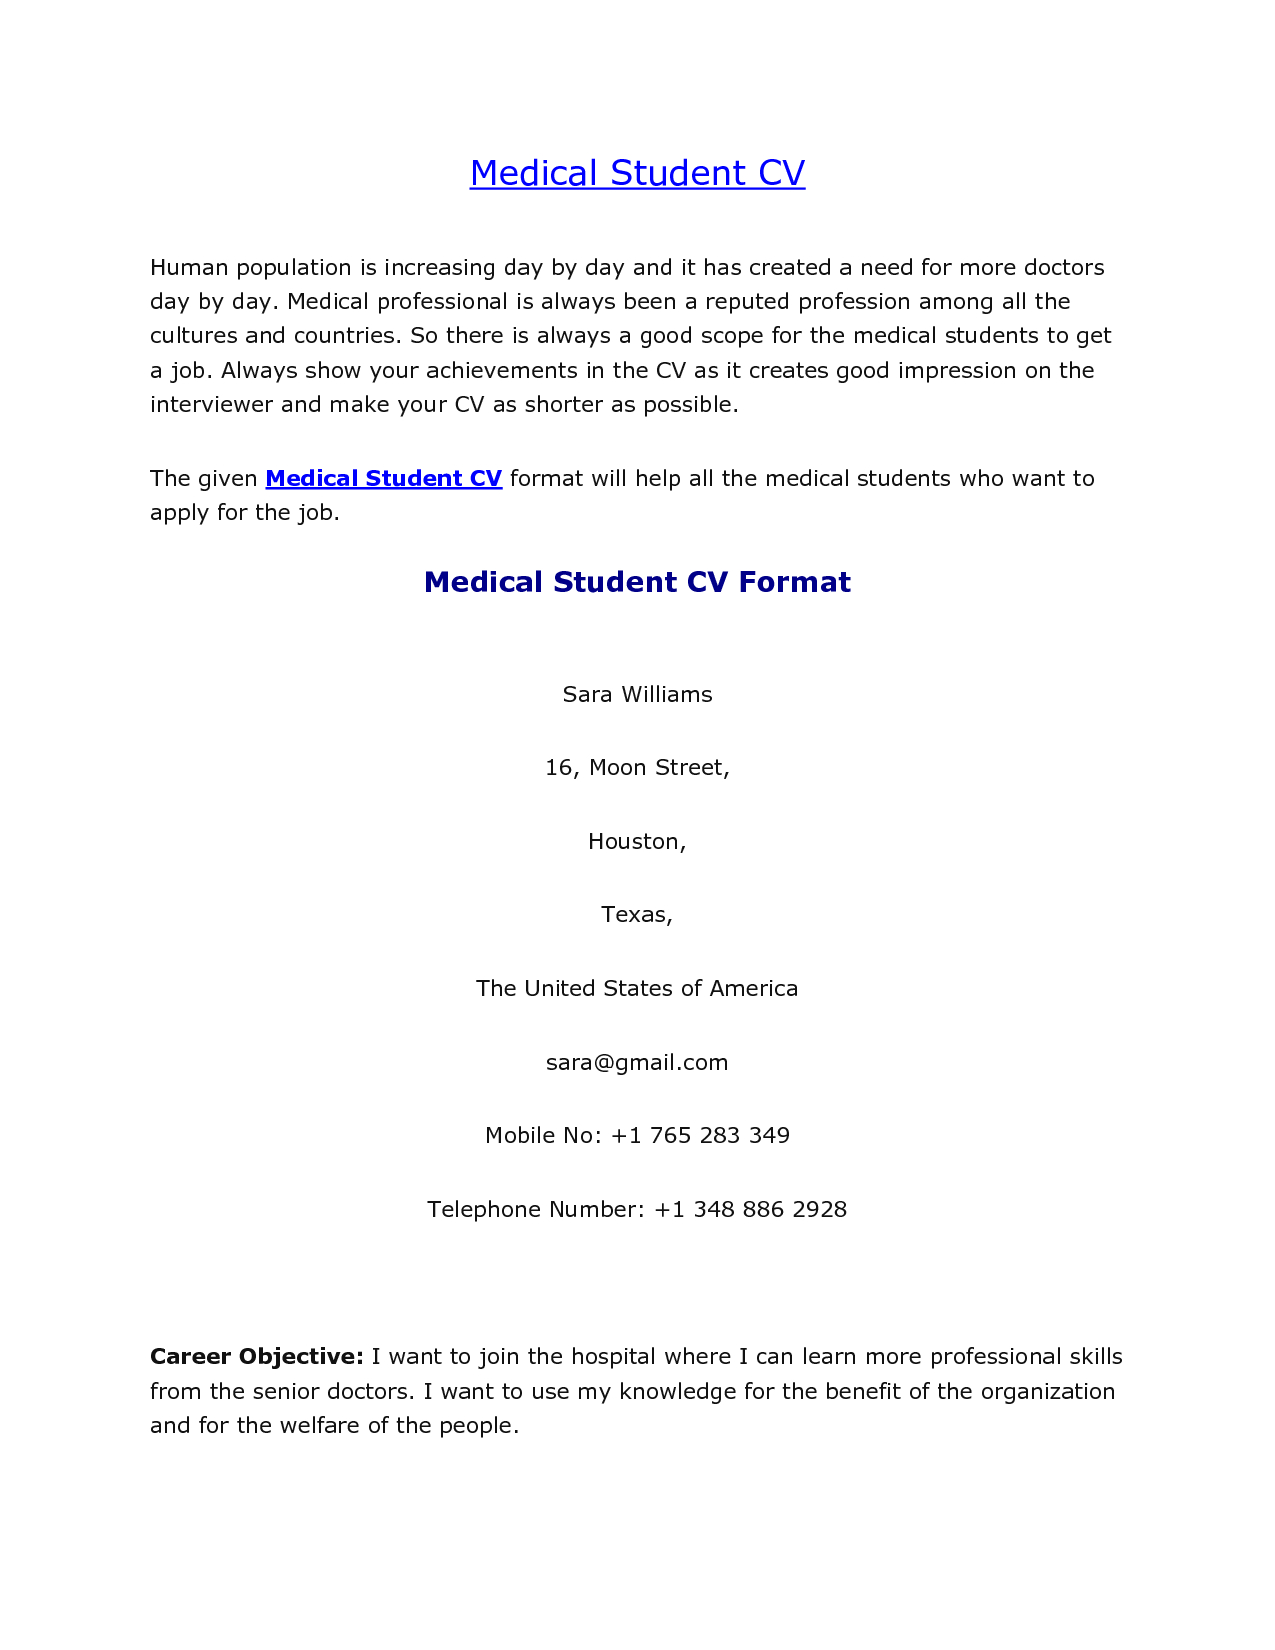 Resume for Med School - Medical Student Cv Sample Resume Template Pinterest